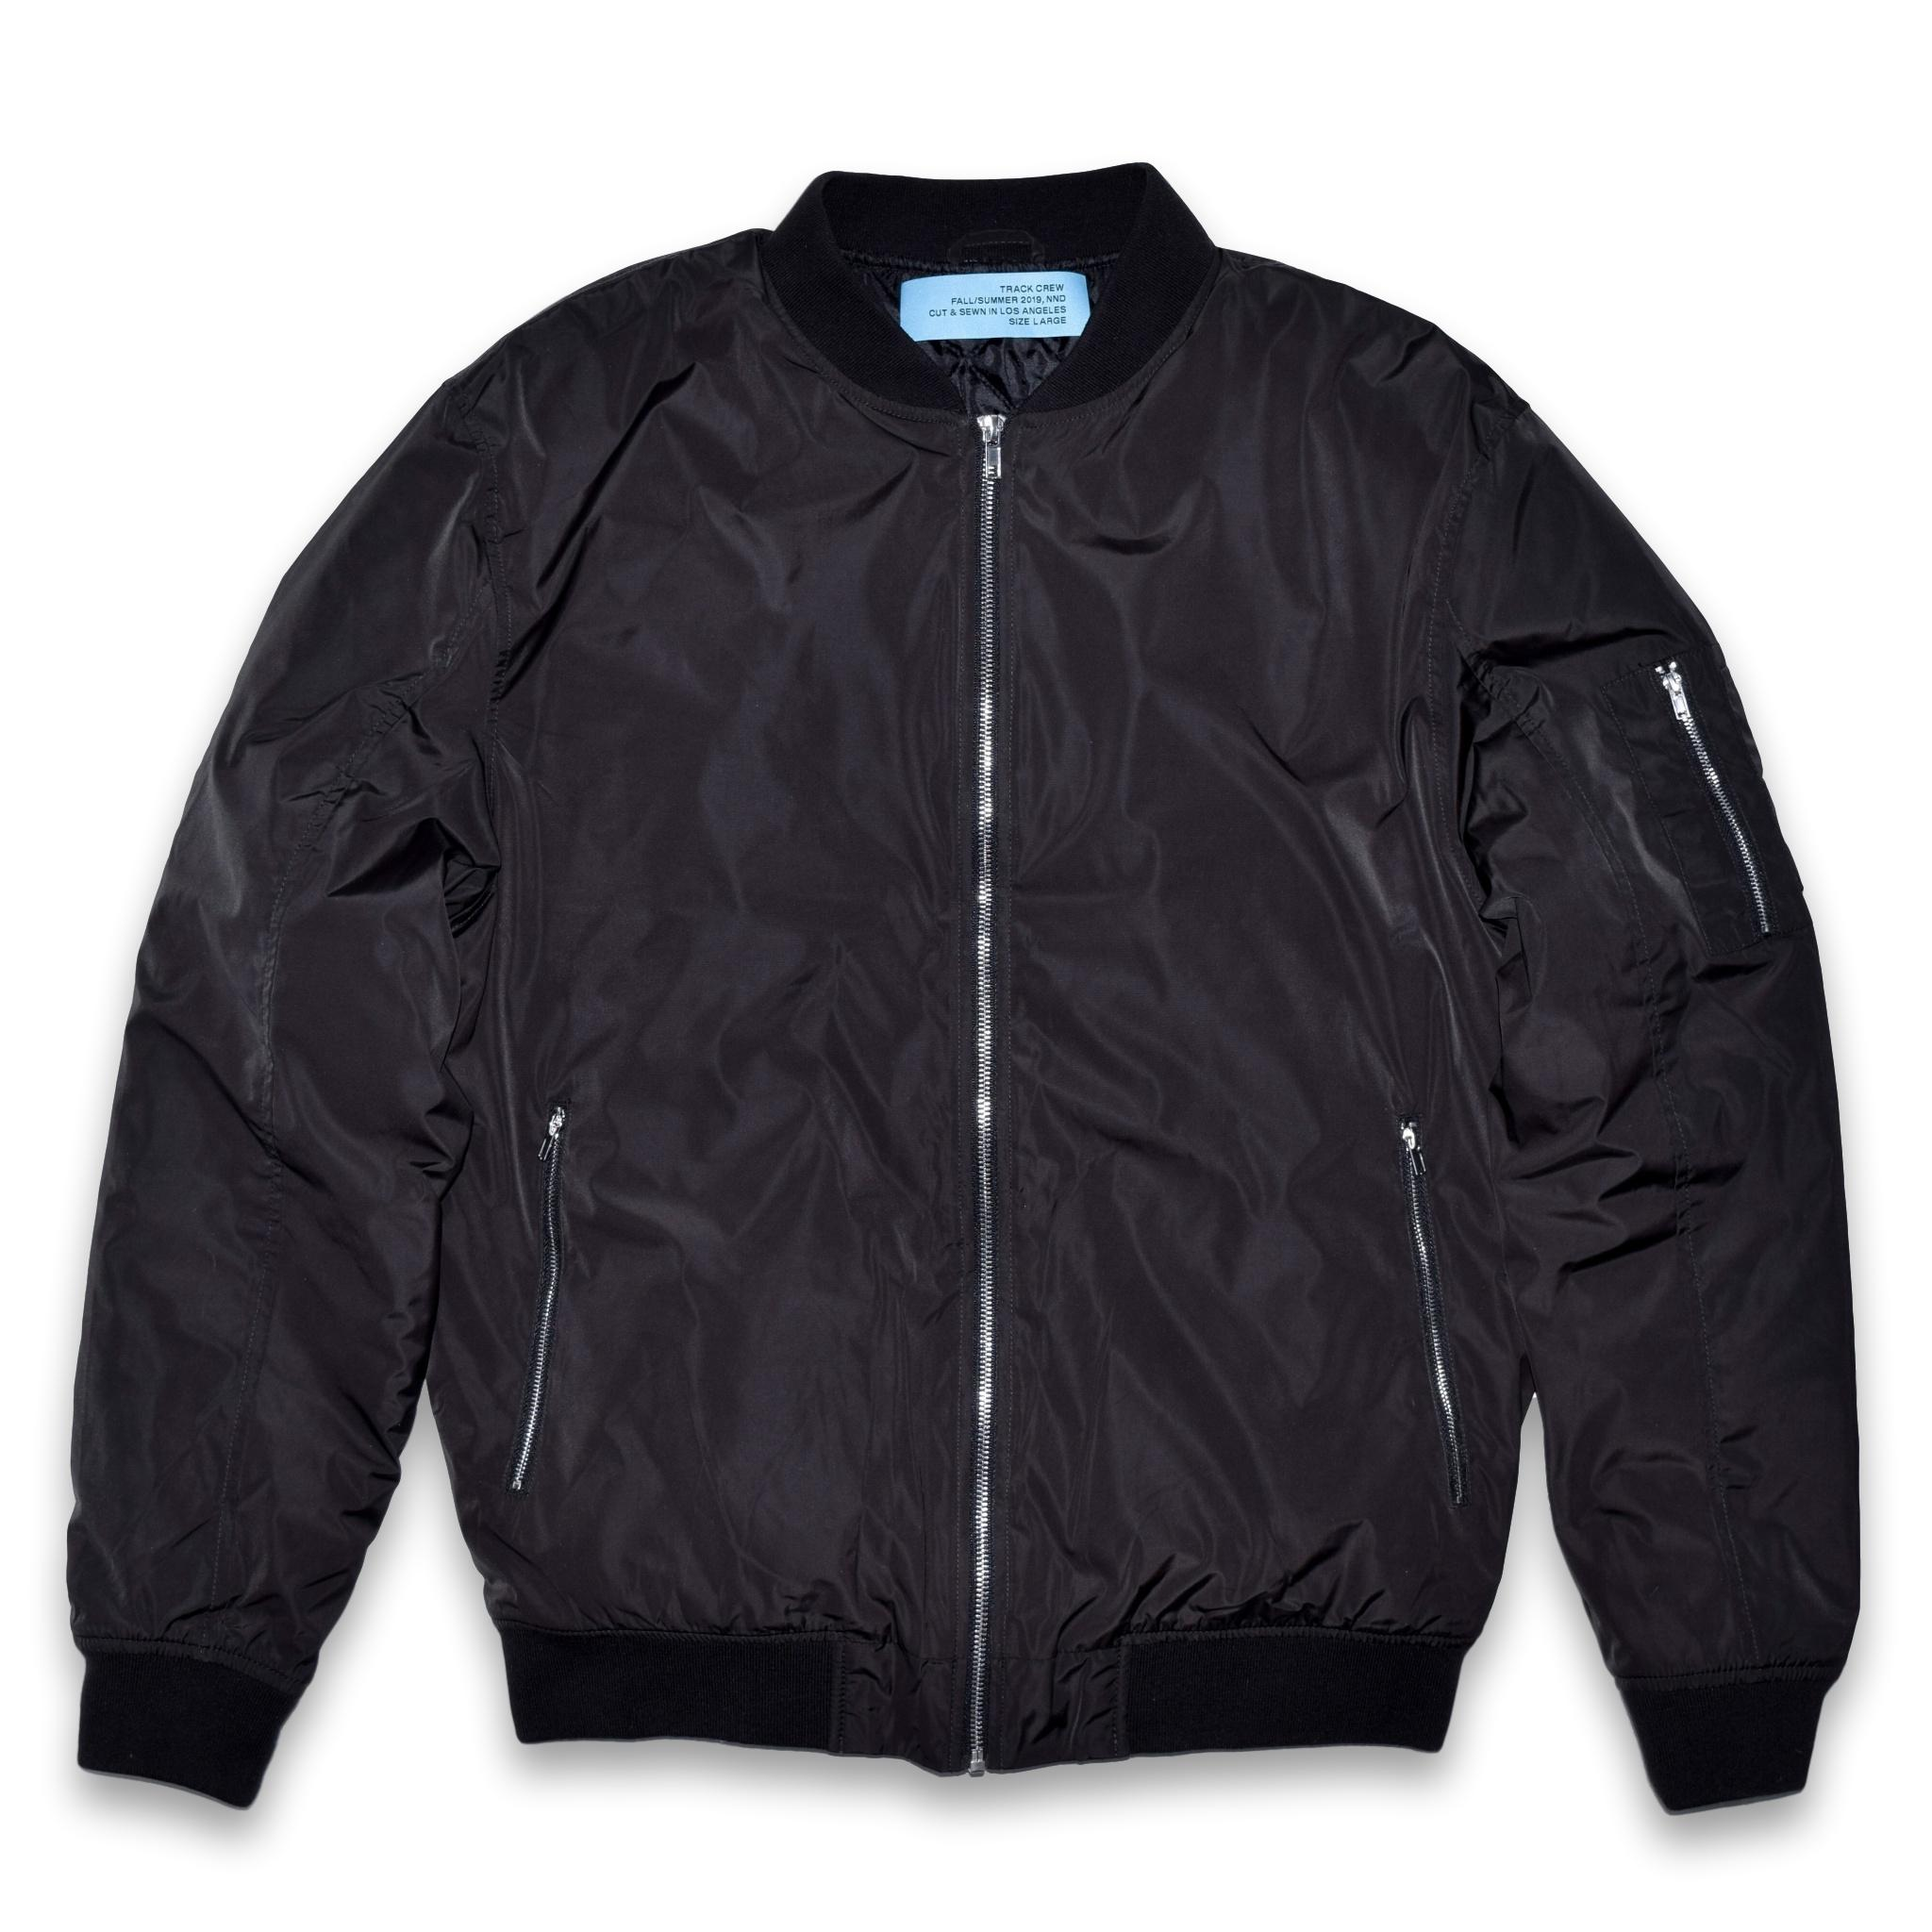 quilted bomber jacket - black